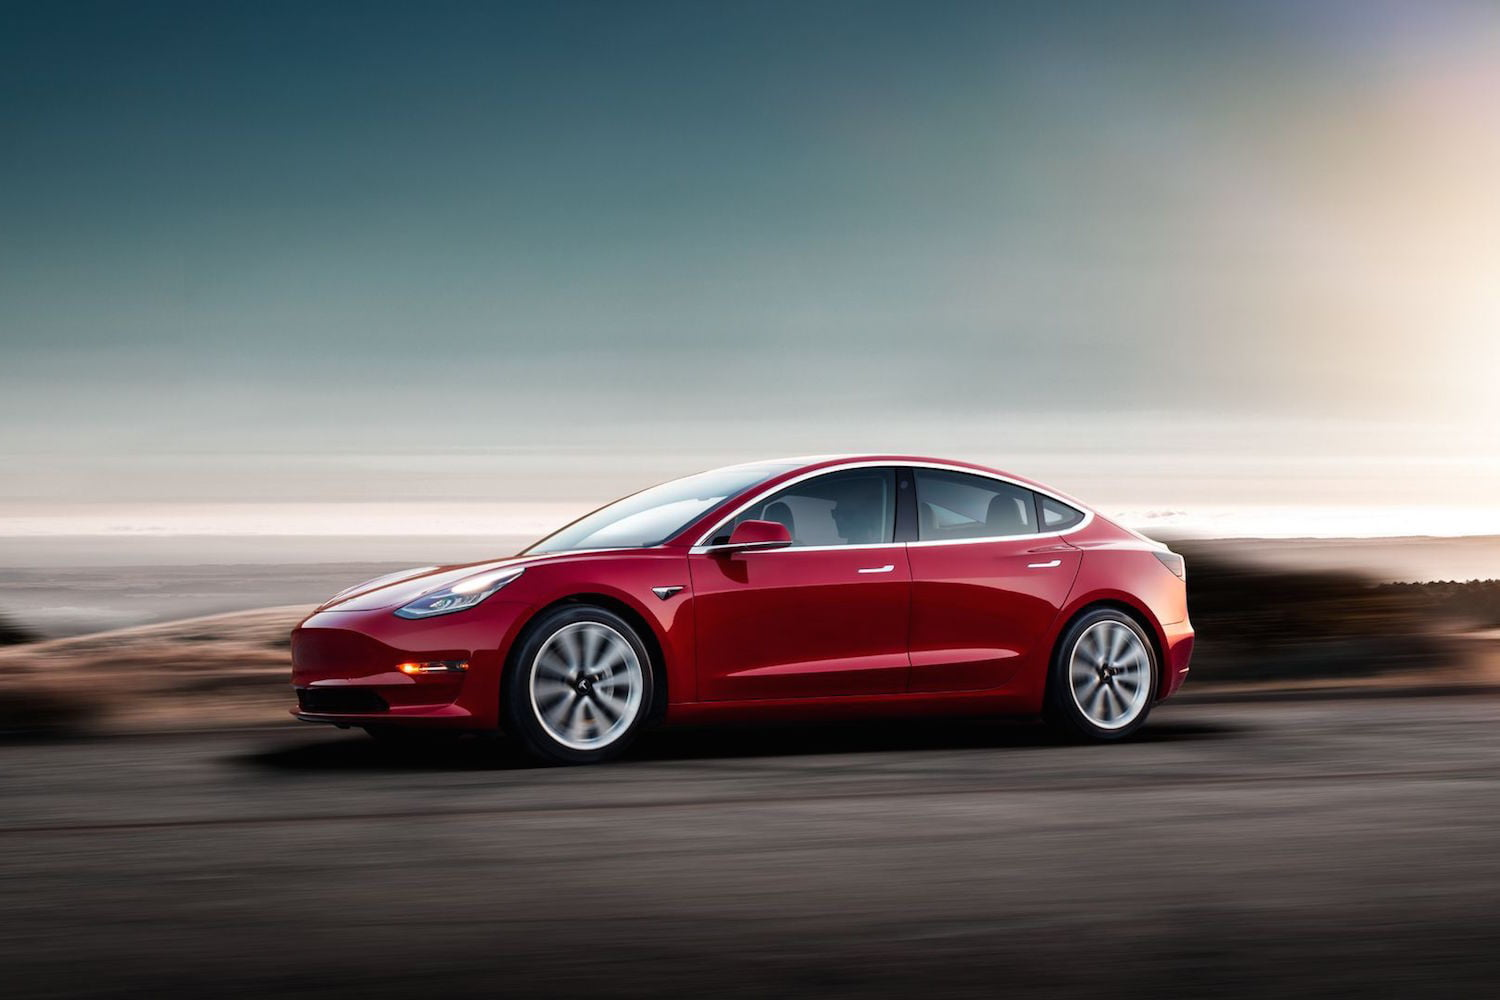 Tesla's Model 3 qualifies for owner tax incentives in Canada